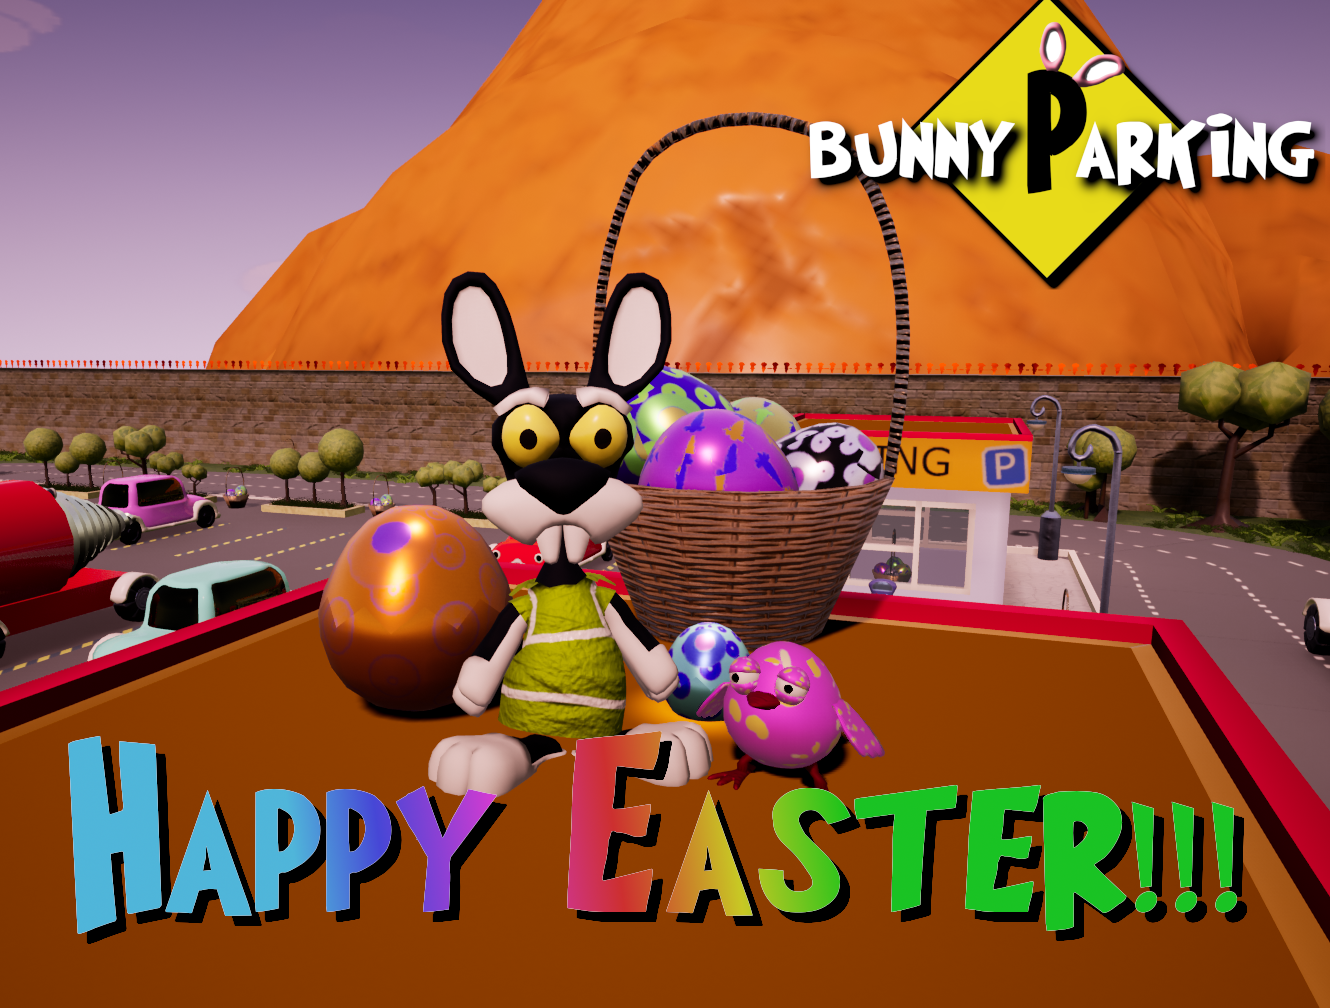 Bunny Parking :: Update 5 - Easter Time!